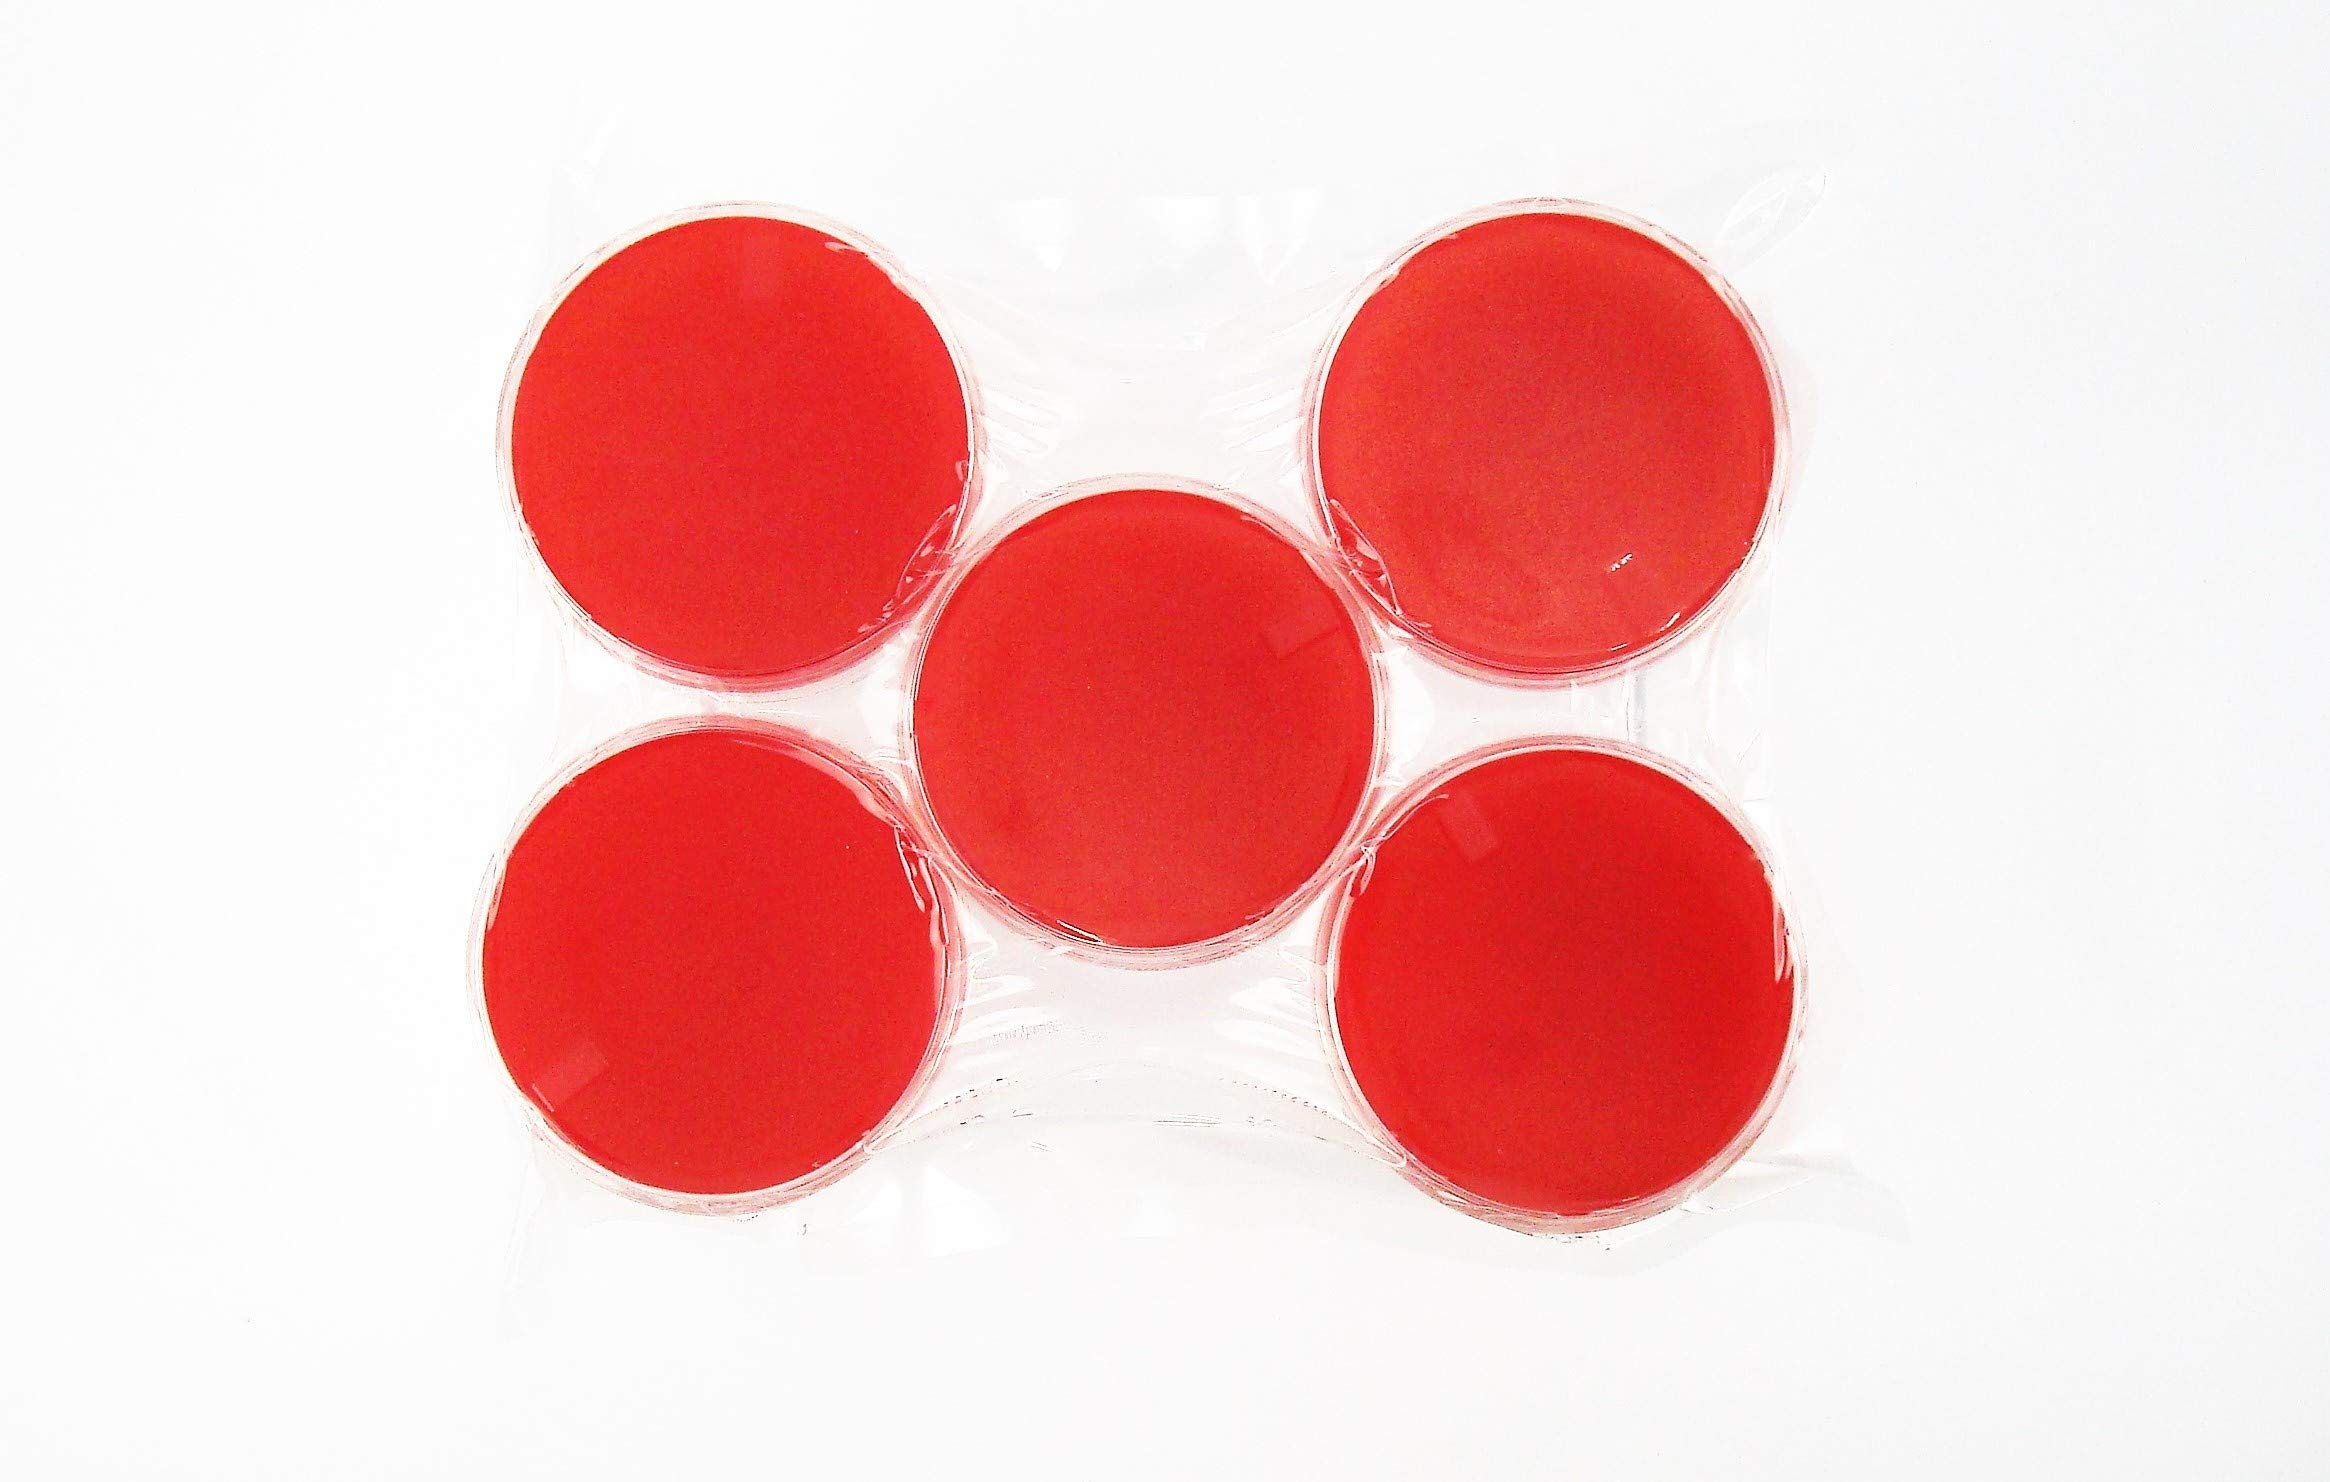 Red Blood Agar (RBA), (10-Pack) Tryptic Soy Agar with 5% Sheep Blood, Pre-Poured, Flat-Packed, Vacuum Sealed, 15x100mm Petri Plates. by Diamante Scientific